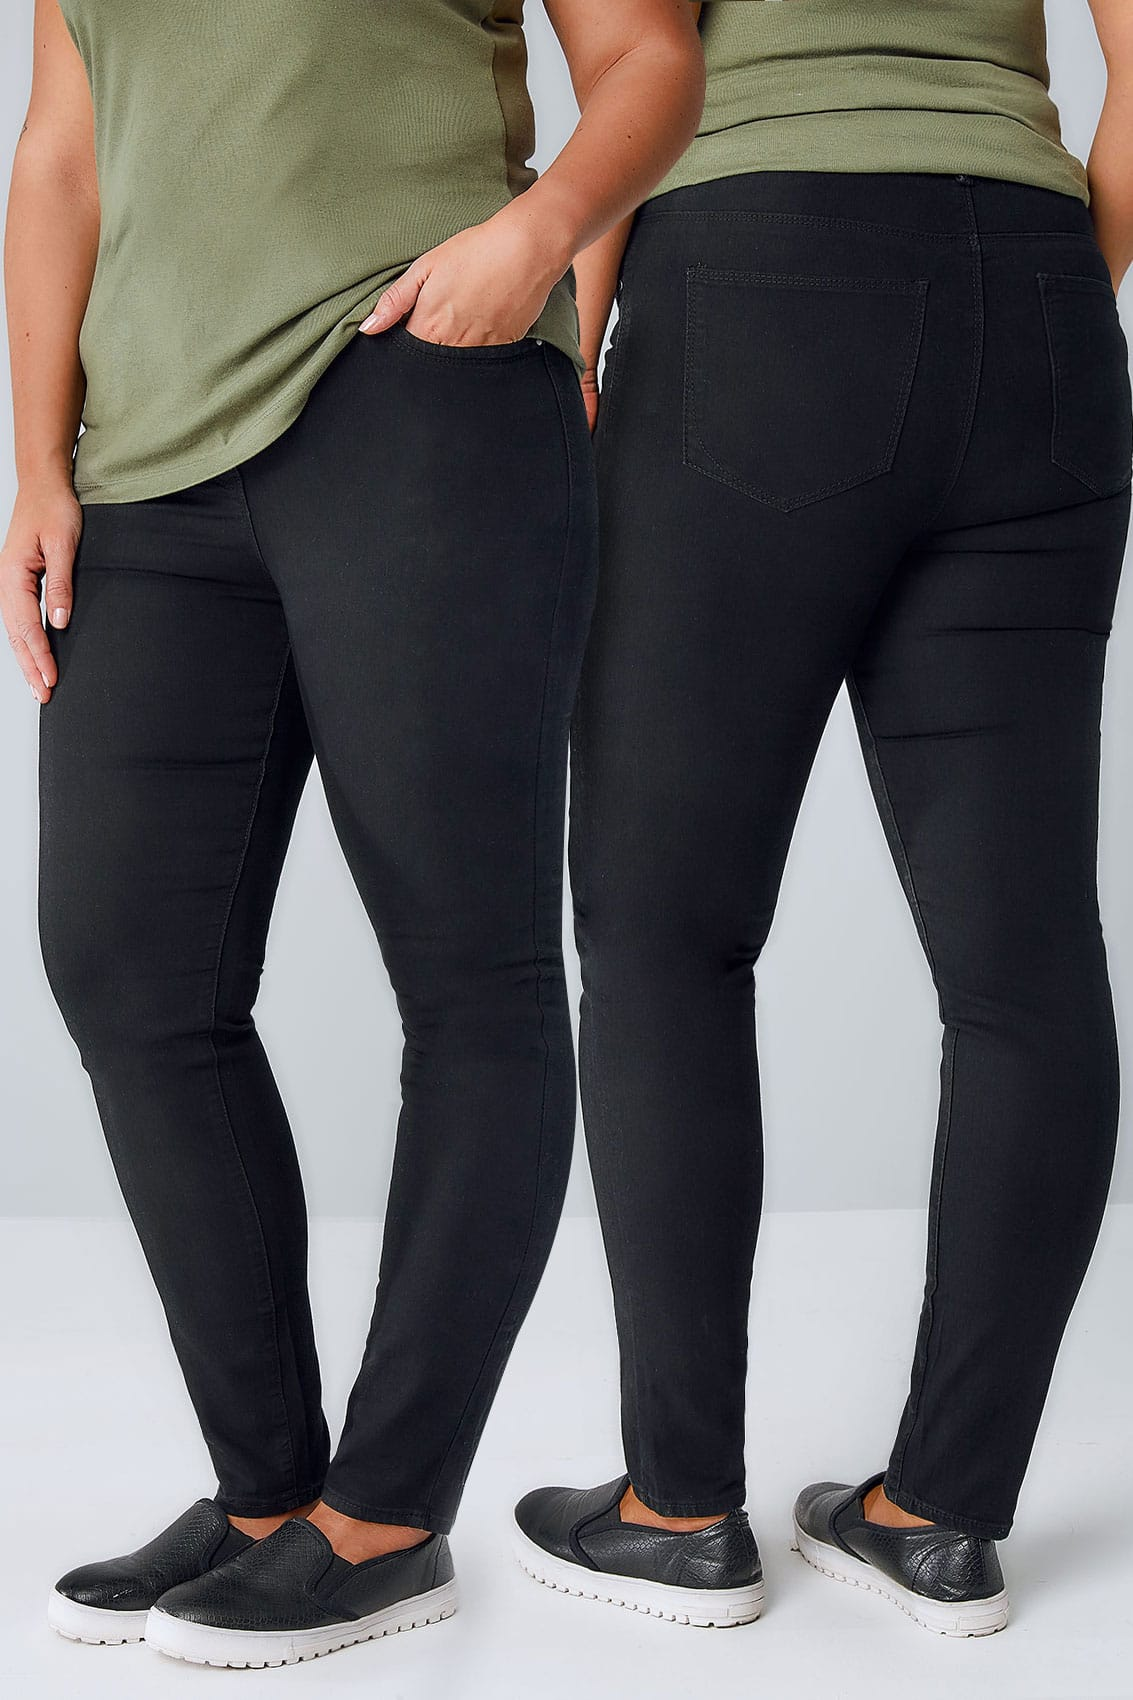 Women's Stretch Slimming Curvy Skinny Jeans Black $ 32 99 Prime. out of 5 stars 9. CFR. Women Active Leggings High Waist Yoga Pants Fitness Skinny Hip Push up Jeans. from $ 6 99 Prime. 5 out of 5 stars 2. Levi's. Women's High Rise Skinny Jeans. from $ 29 75 Prime. out of 5 stars Wax.